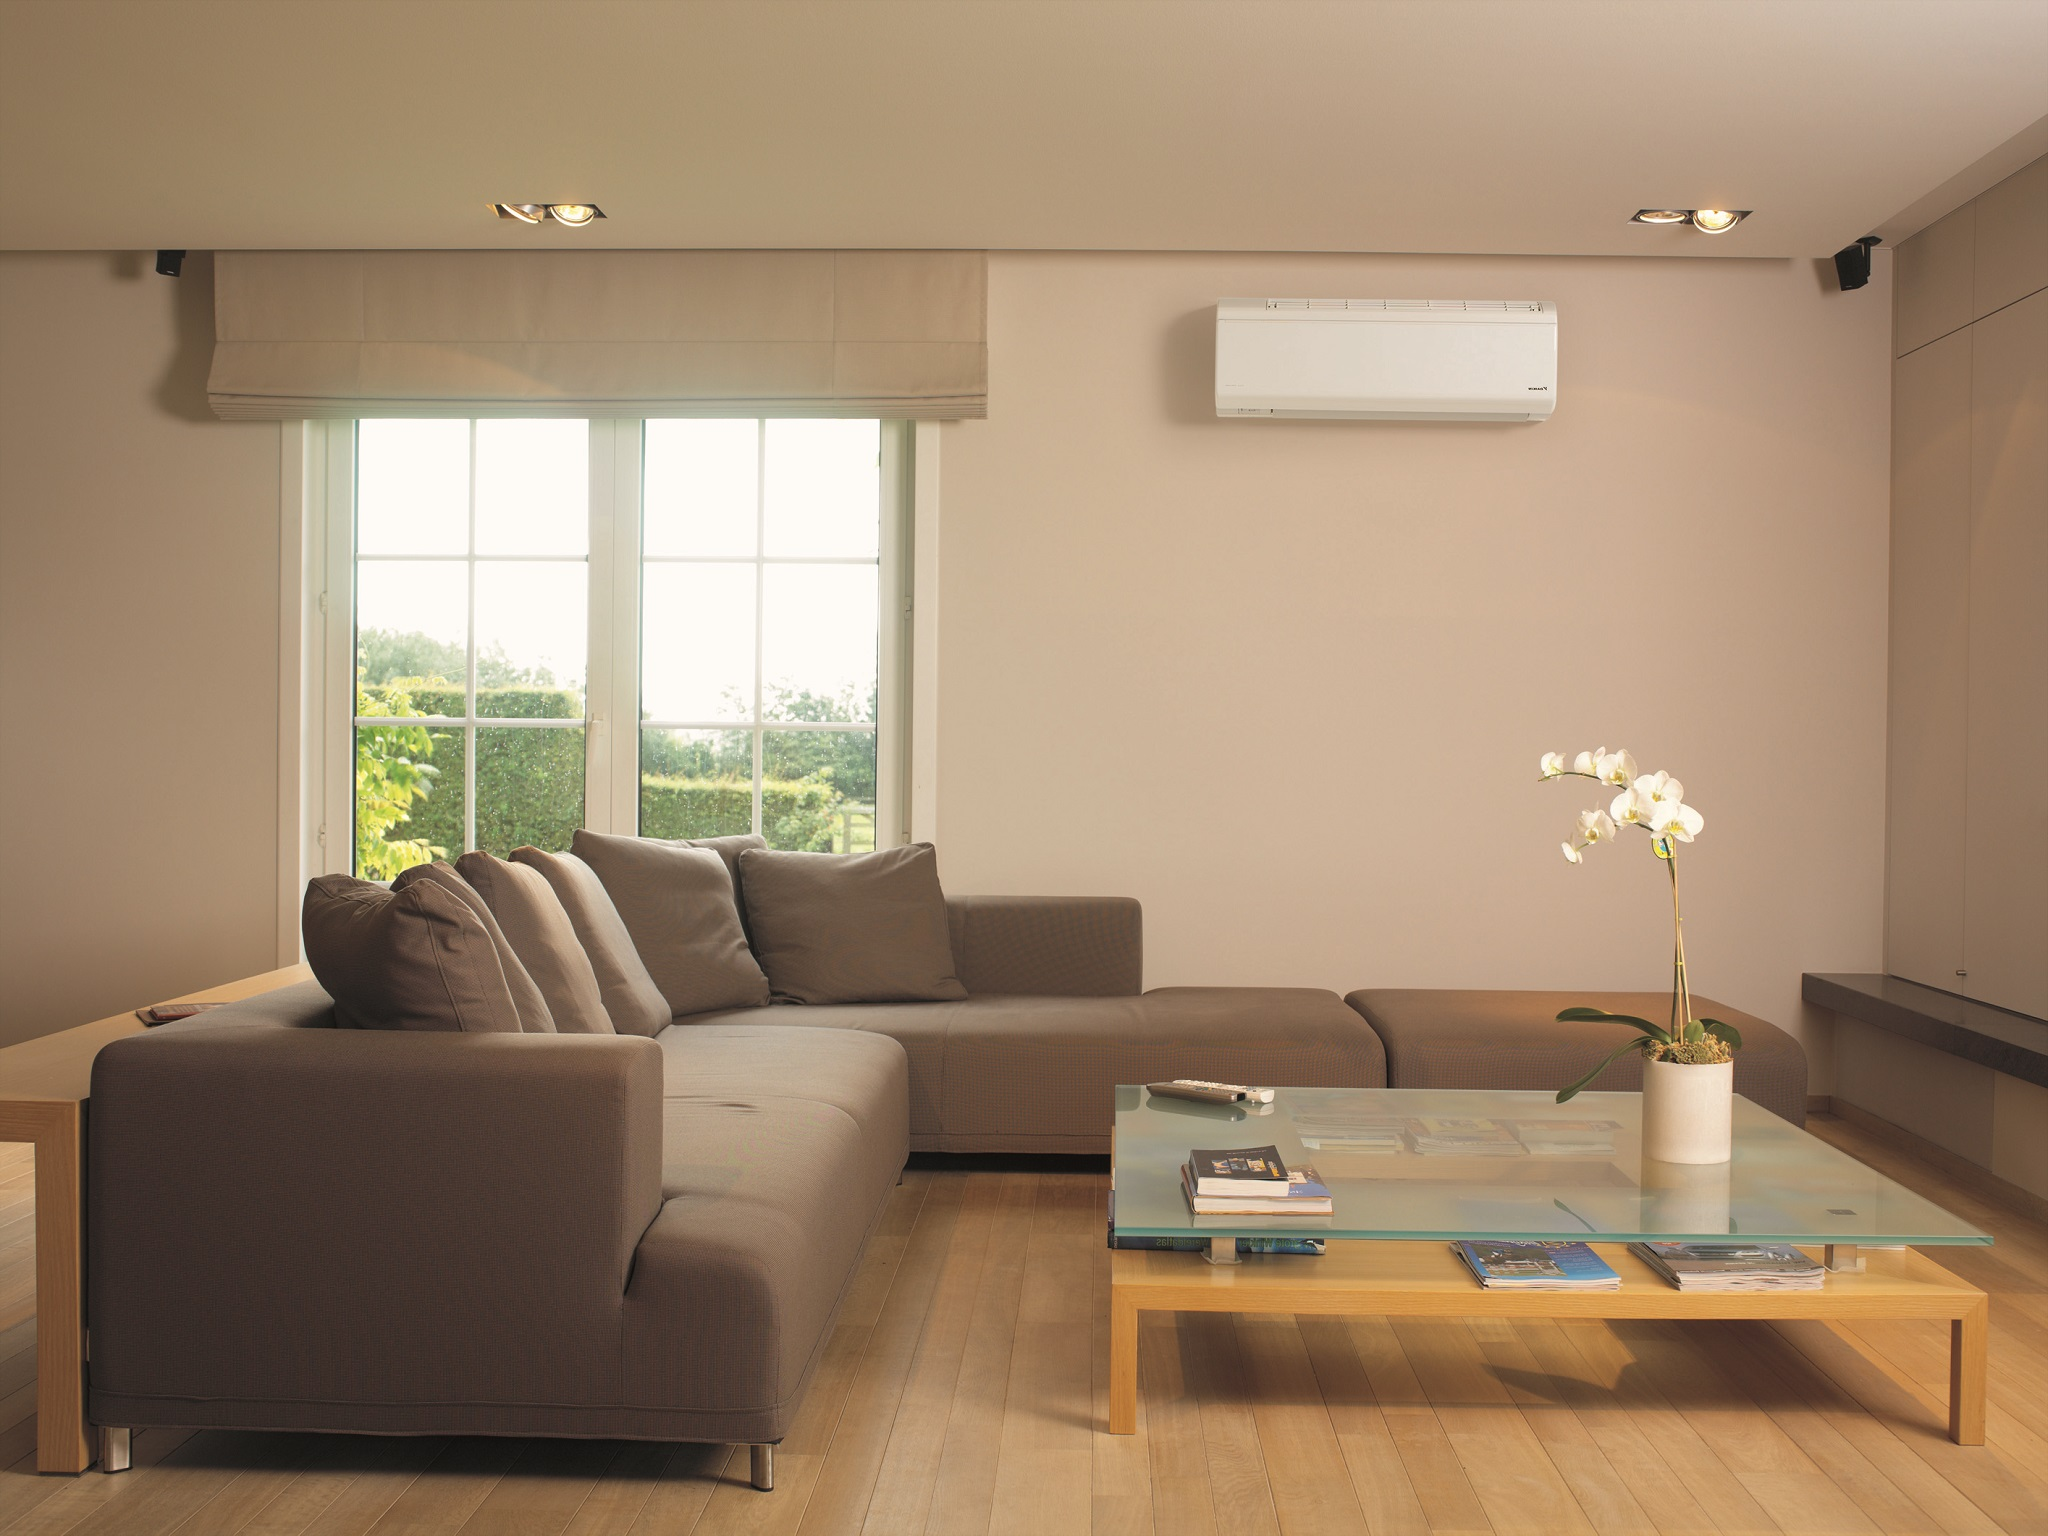 from basic home furnace or boiler air conditioner and air quality  #9AA12A